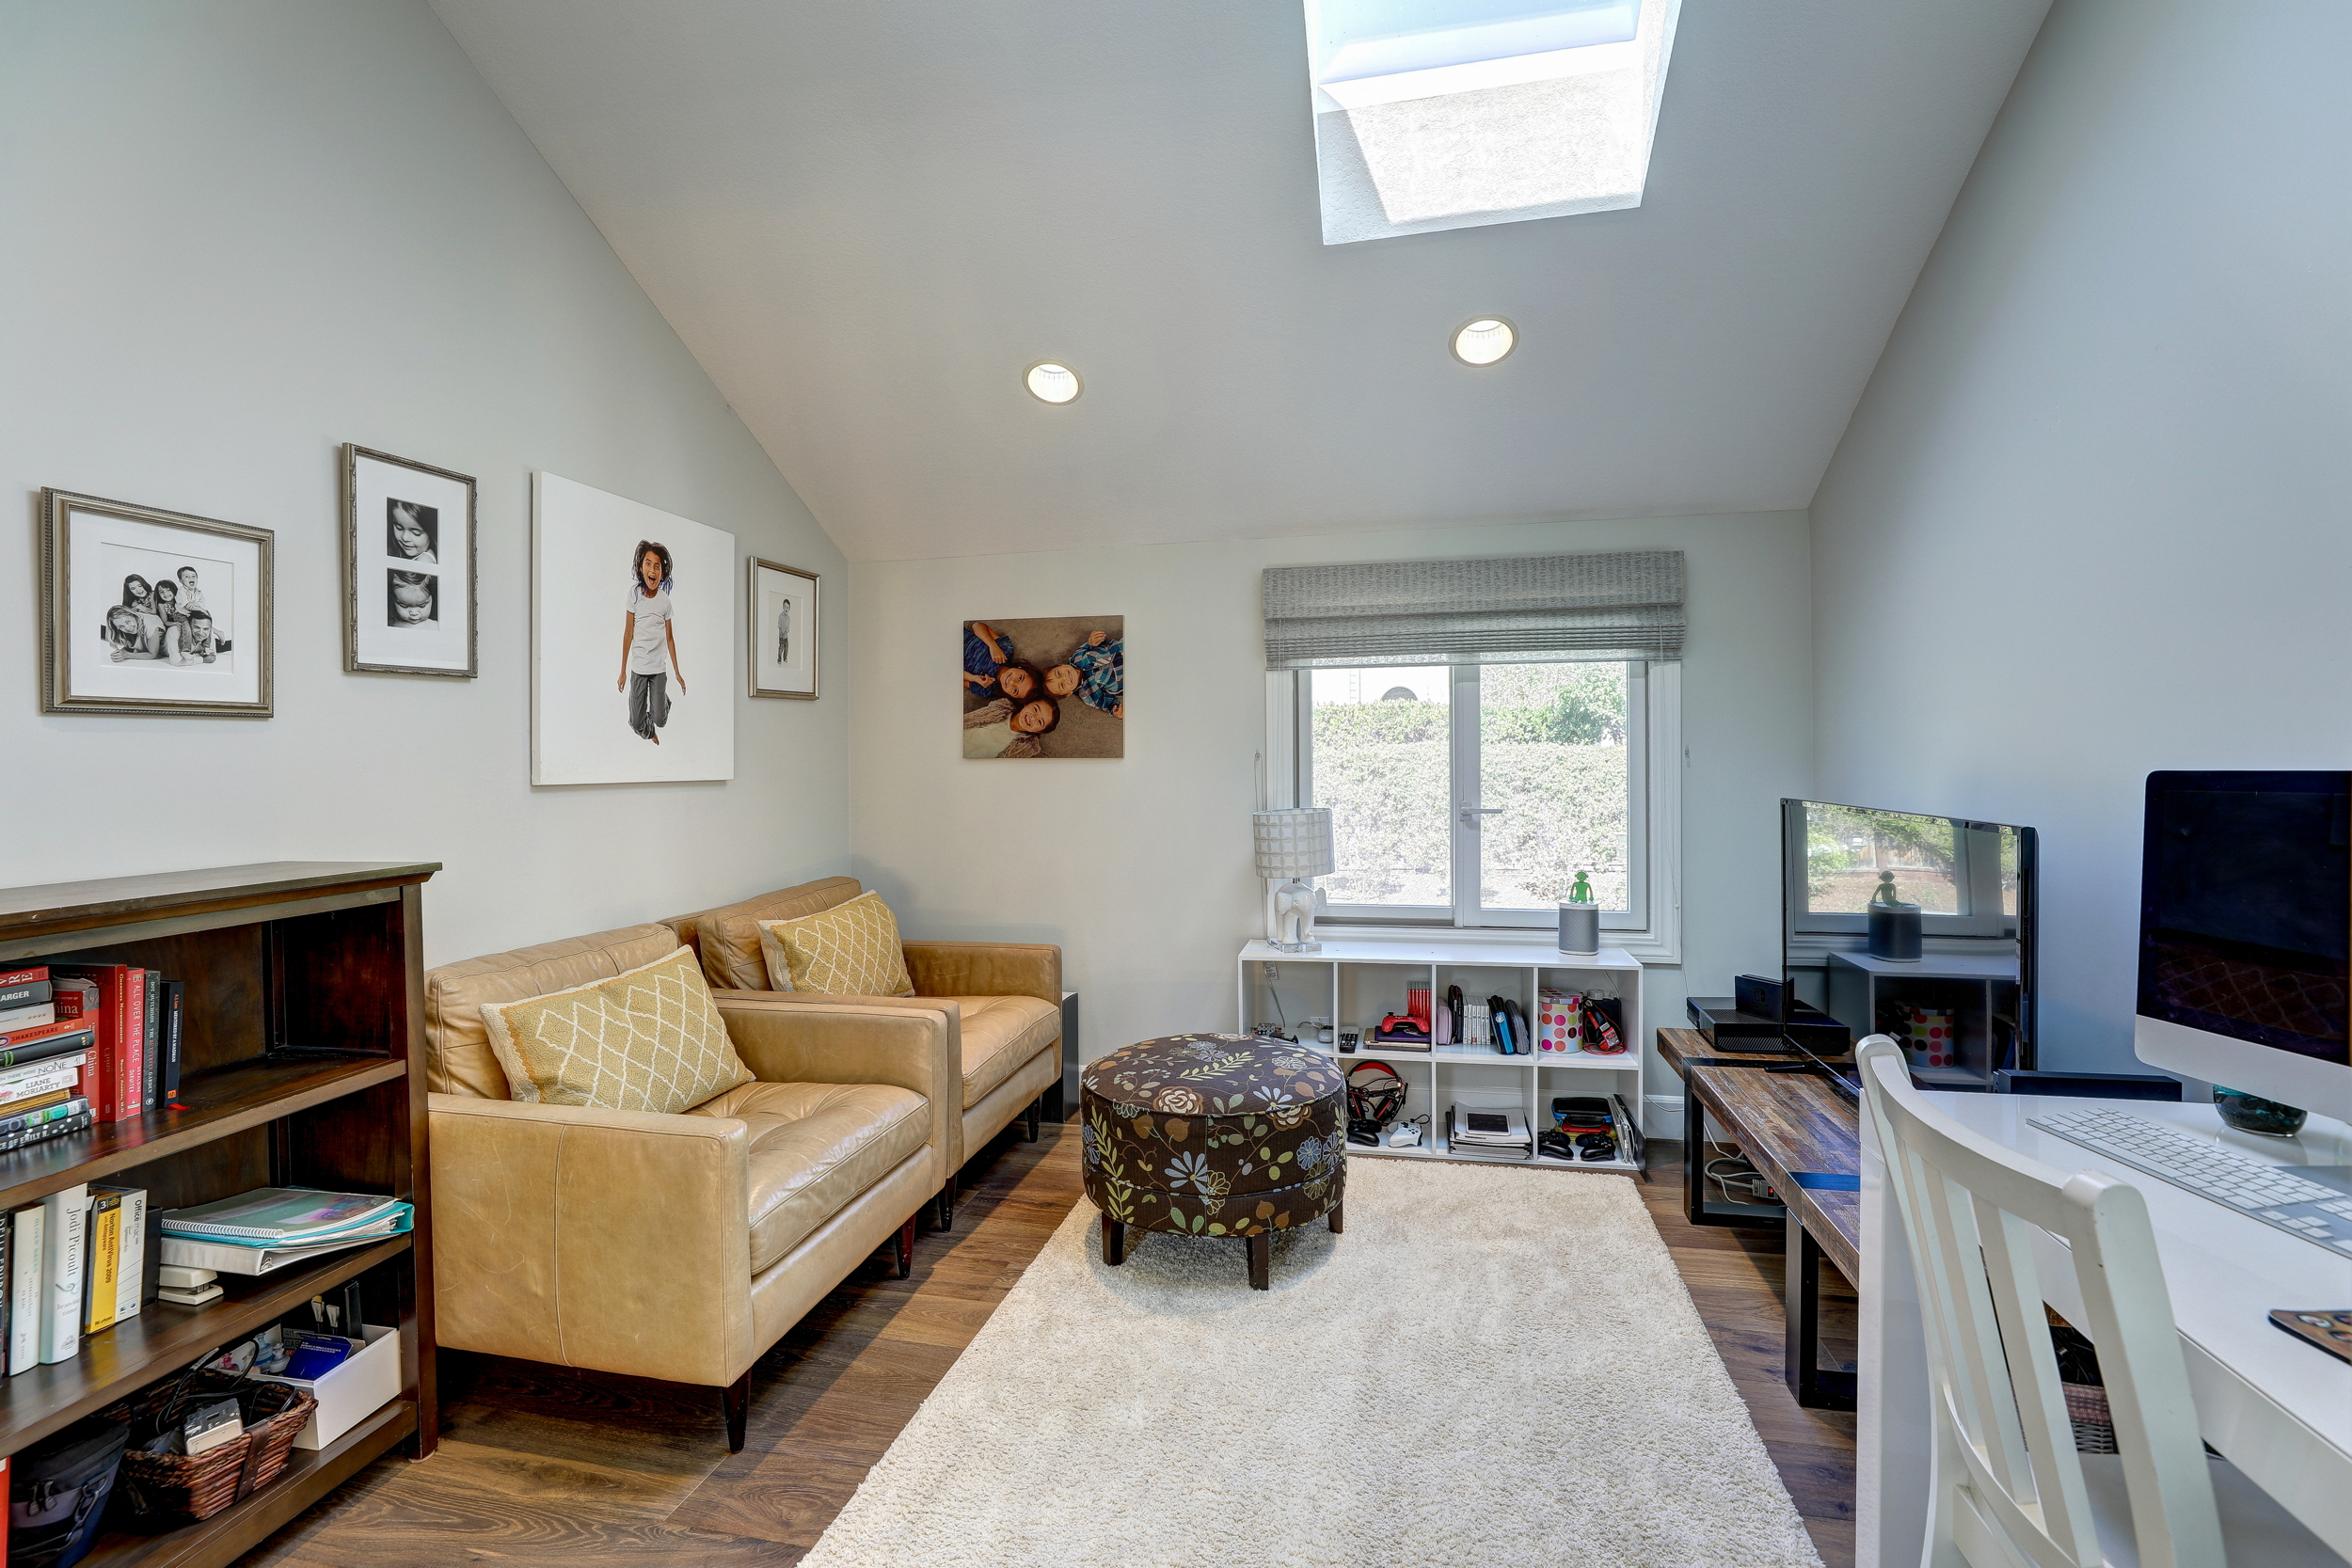 8Parkside 45 - Own Marin with Compass - Marin County Best Realtor.jpg